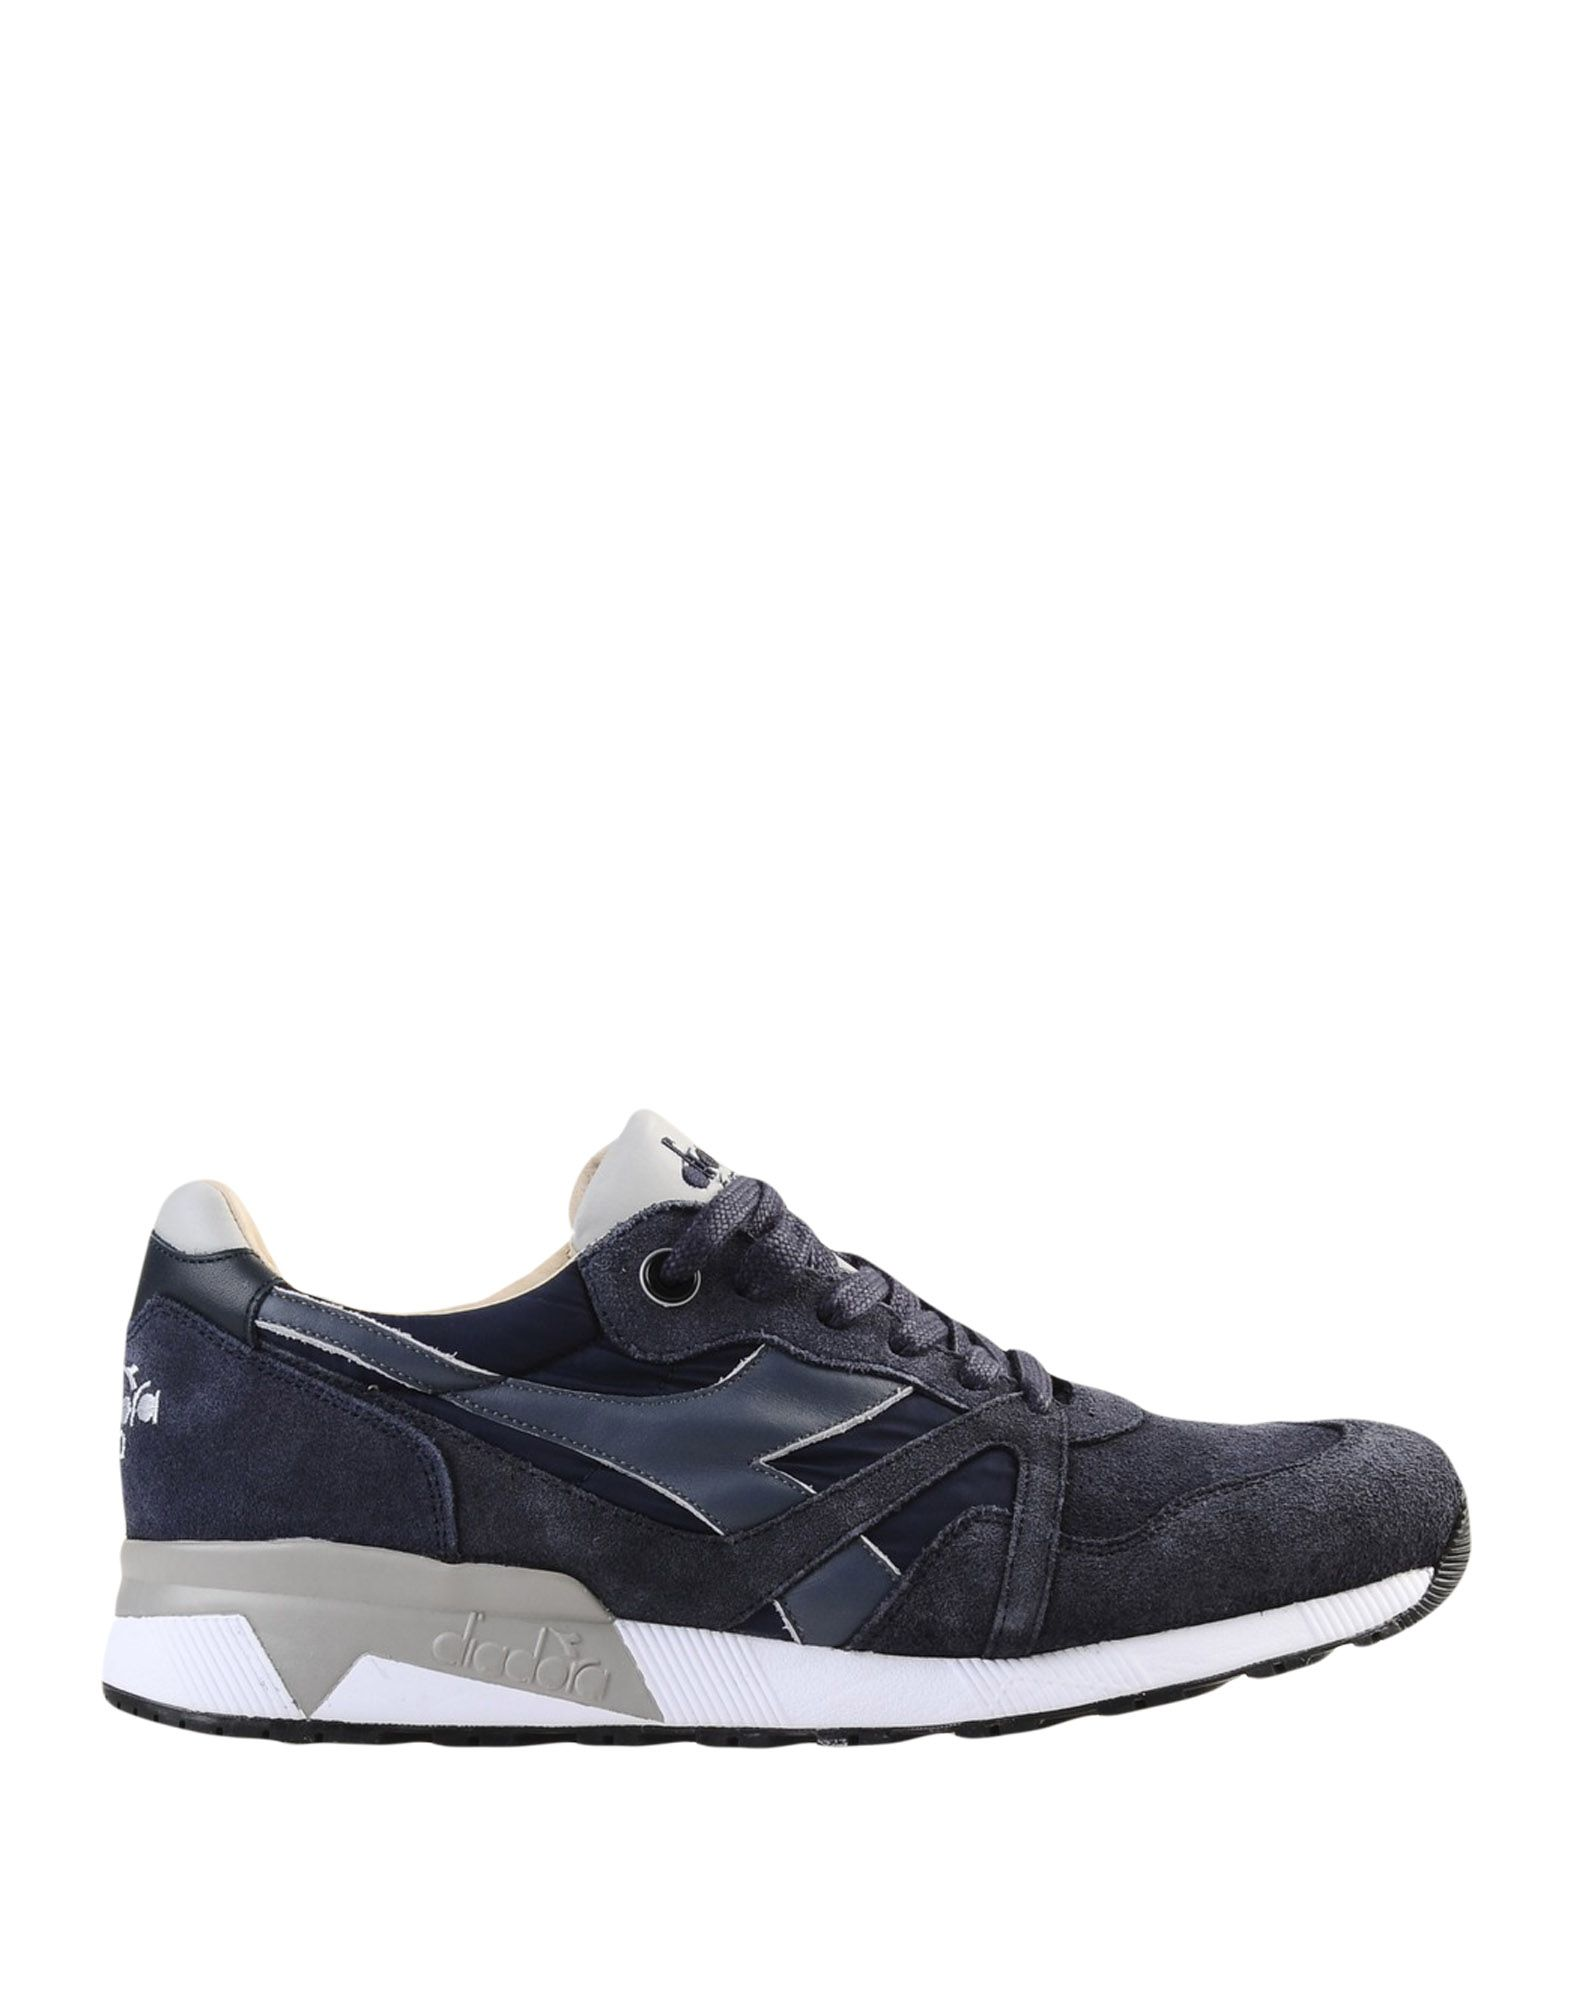 Diadora Heritage N9000 H S Sw - Sneakers - Men on Diadora Heritage Sneakers online on Men  United Kingdom - 11567898NS 32018e